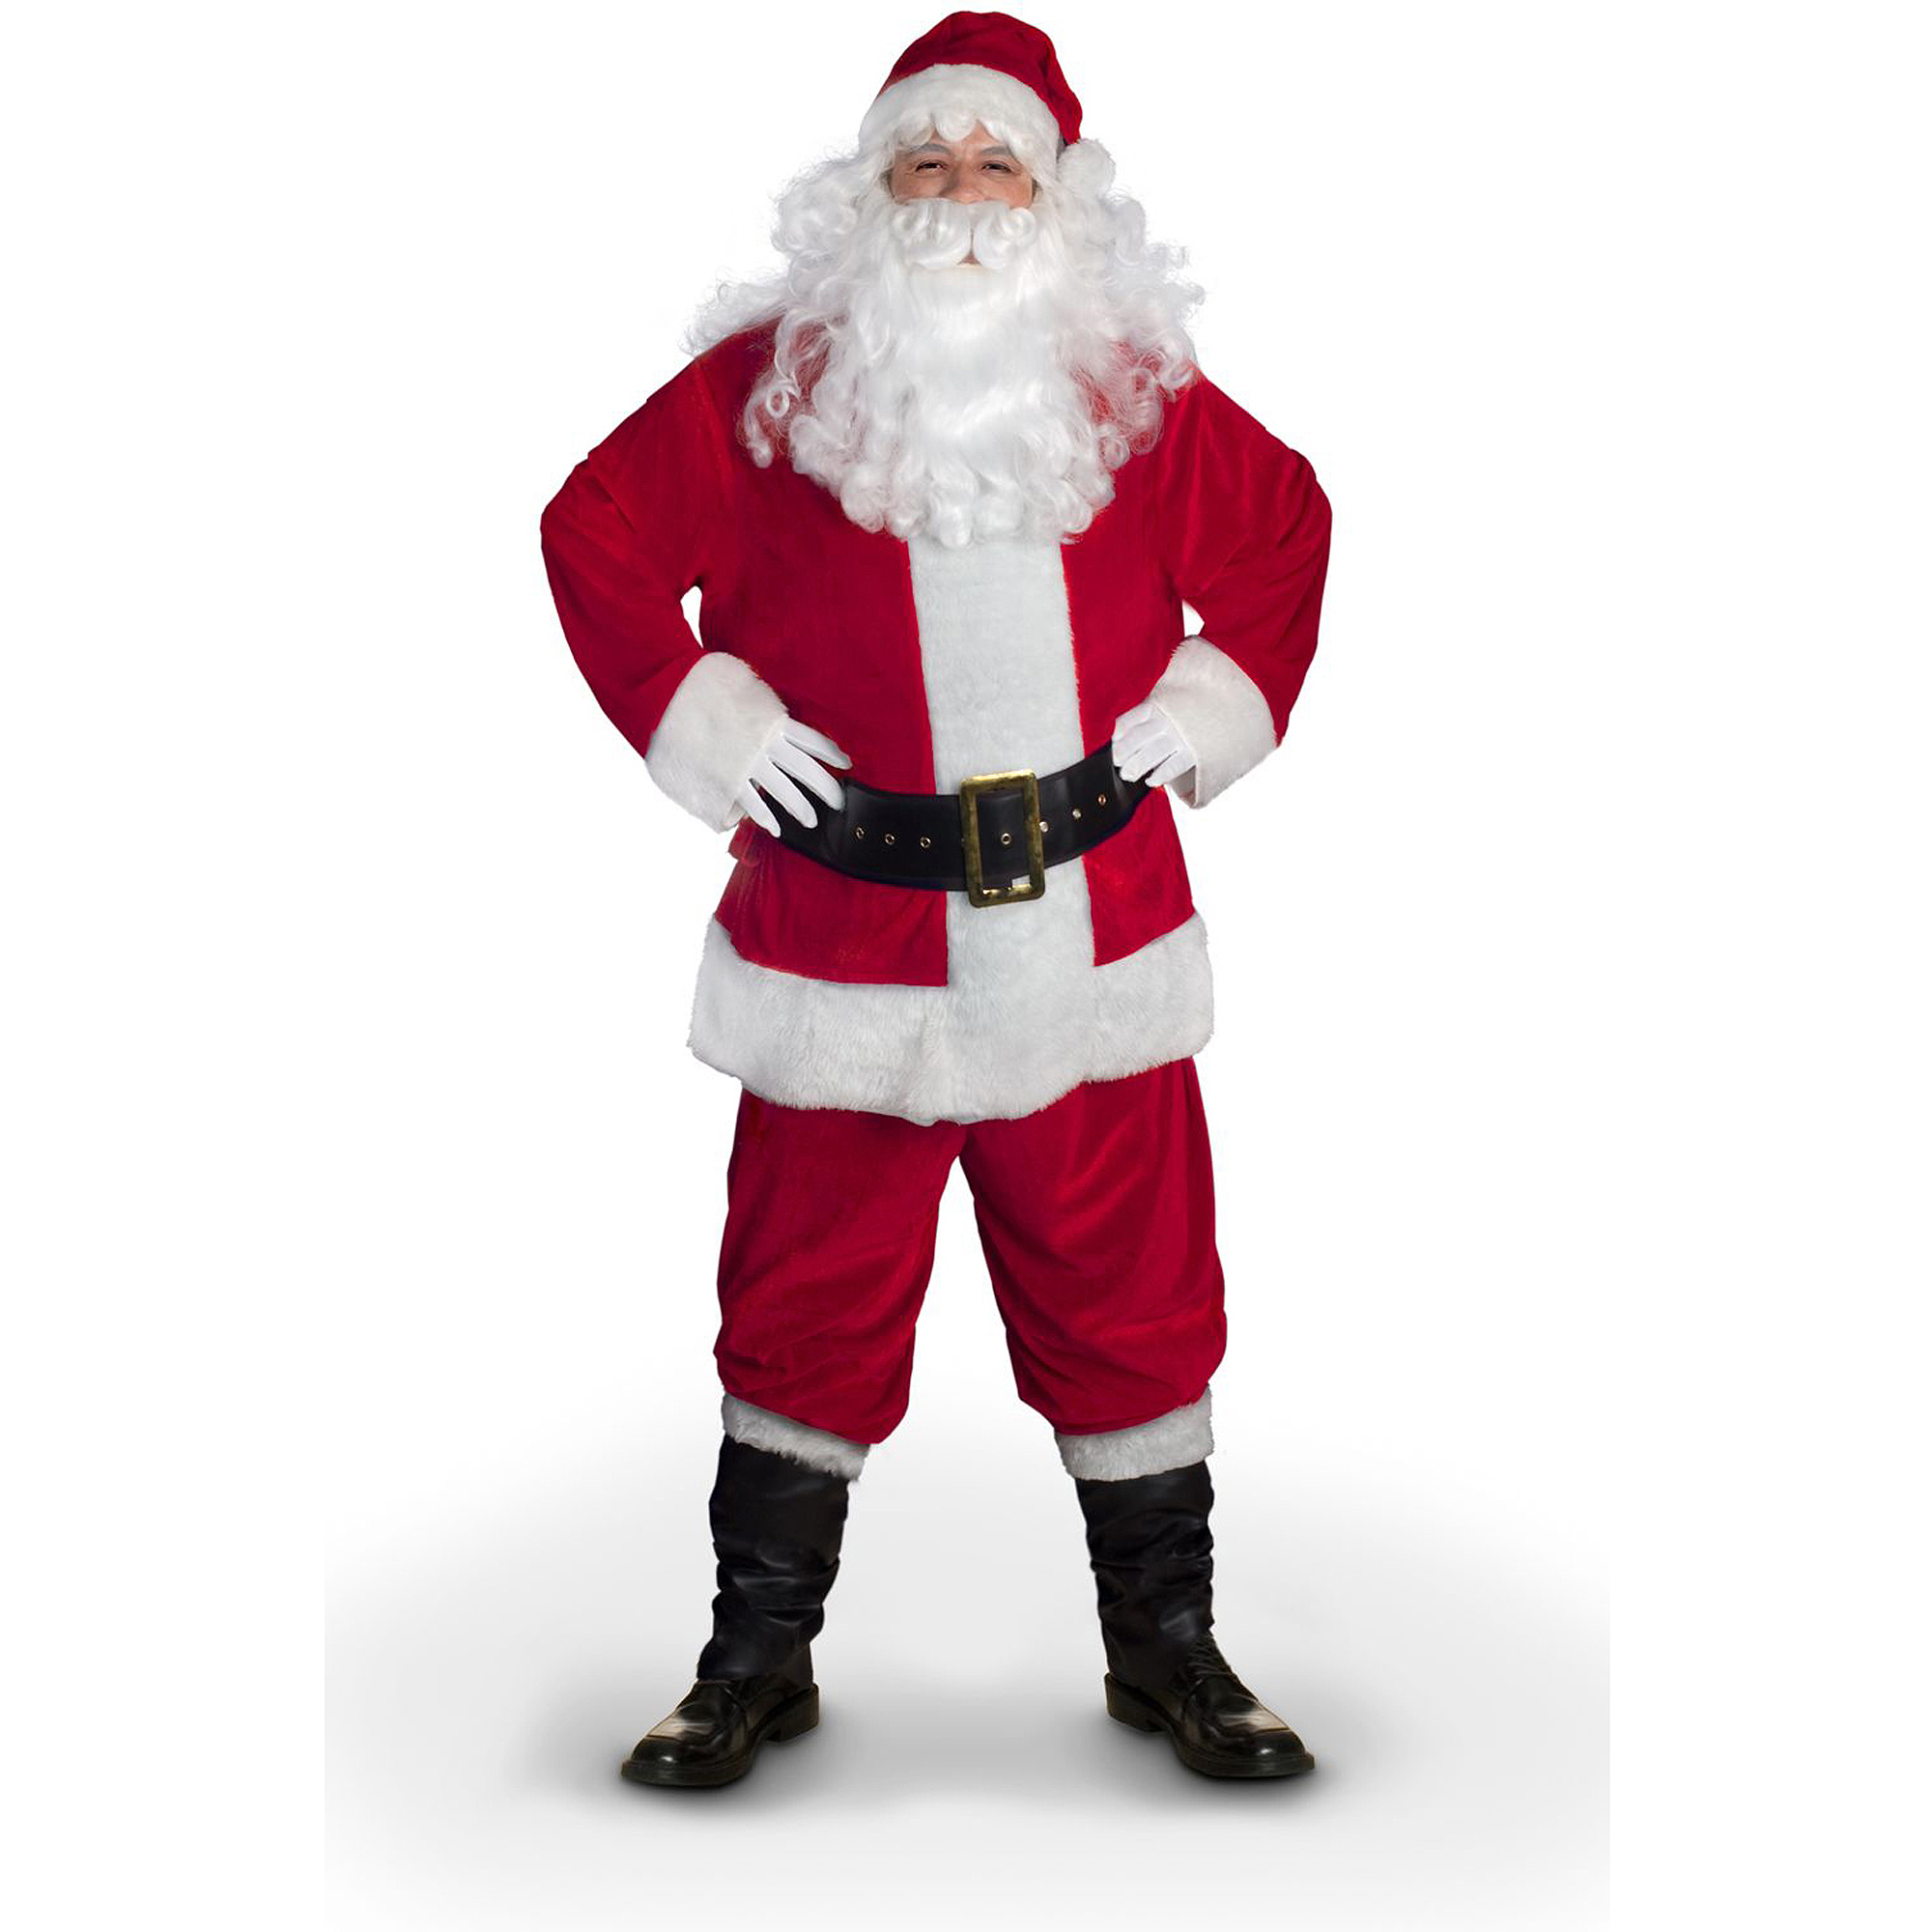 Sunnywood Value Line Santa Claus Costume